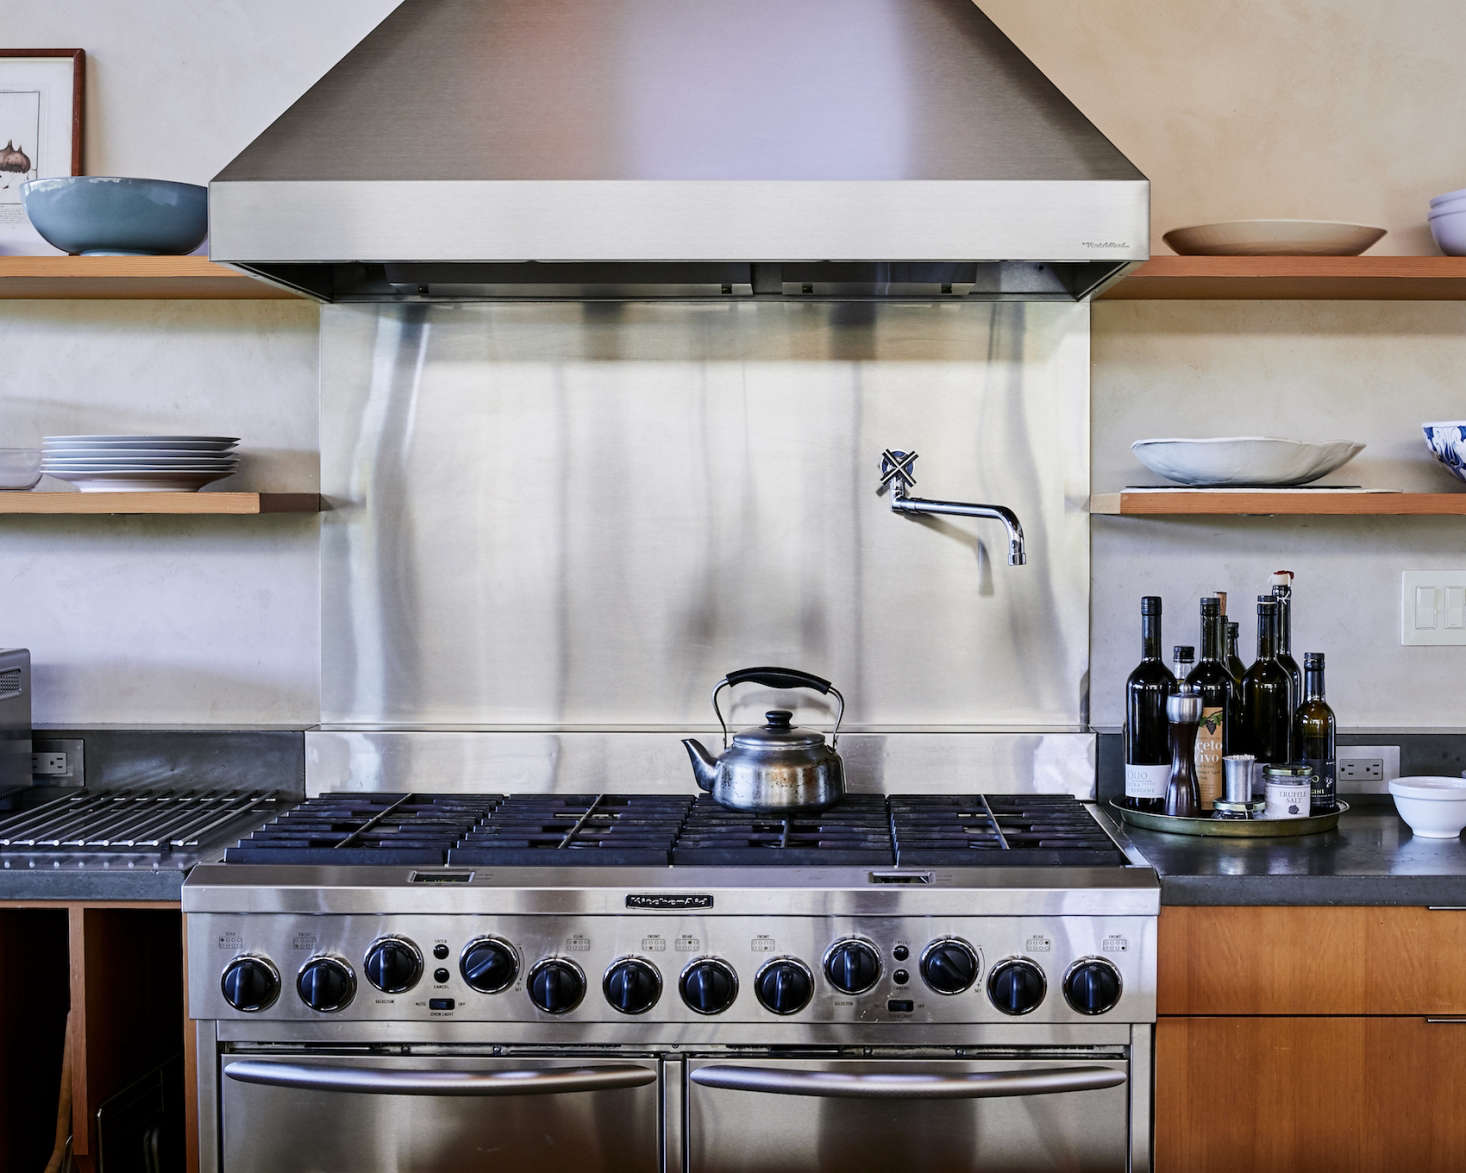 The backsplash of the oversize gas range is stainless steel, as are all the appliances (the material was chosen for its durability, said architect Anding). A Sori Yanagi Tea Kettle is perched on the stove (it&#8